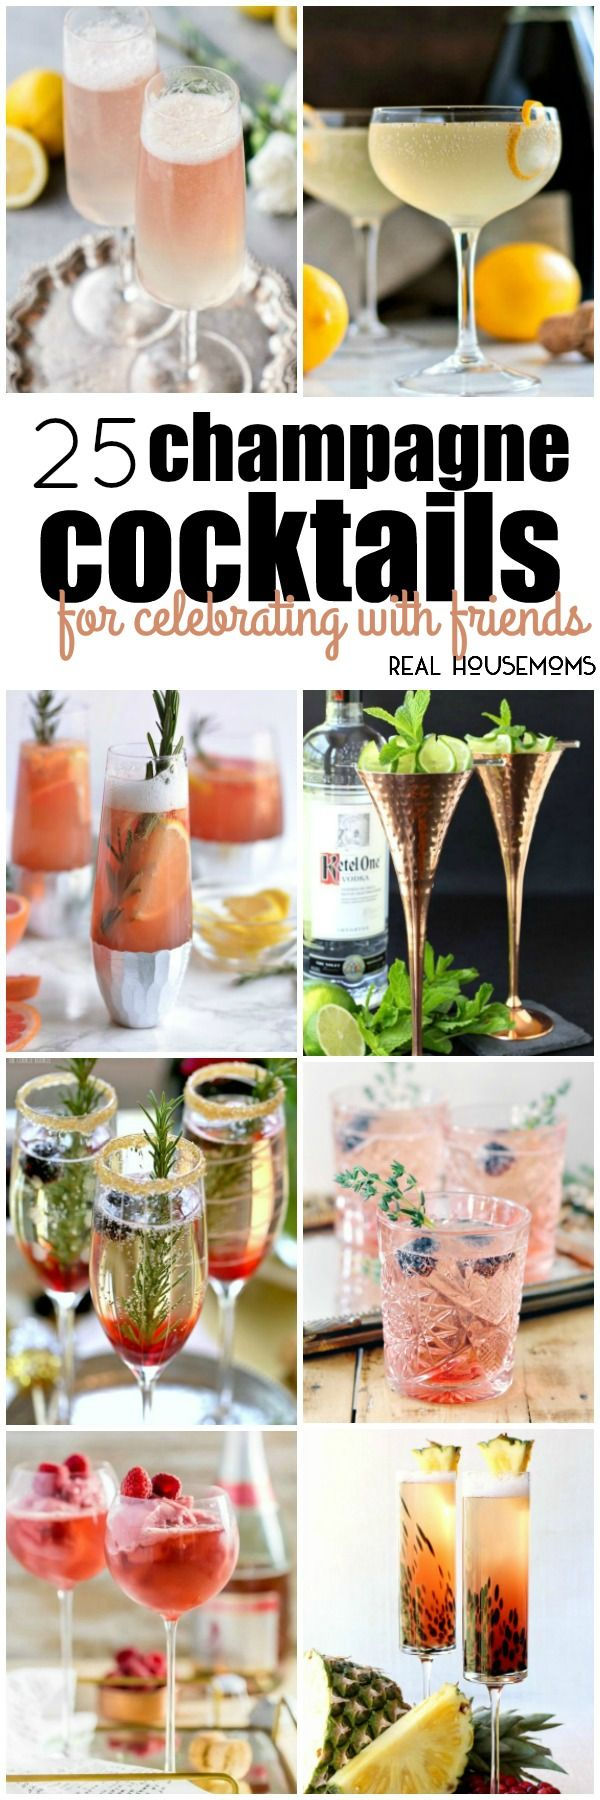 No matter what time of year it is, these 25 Champagne Cocktails for Celebrating with Friends are sure to make your gathering extra special! via @realhousemoms